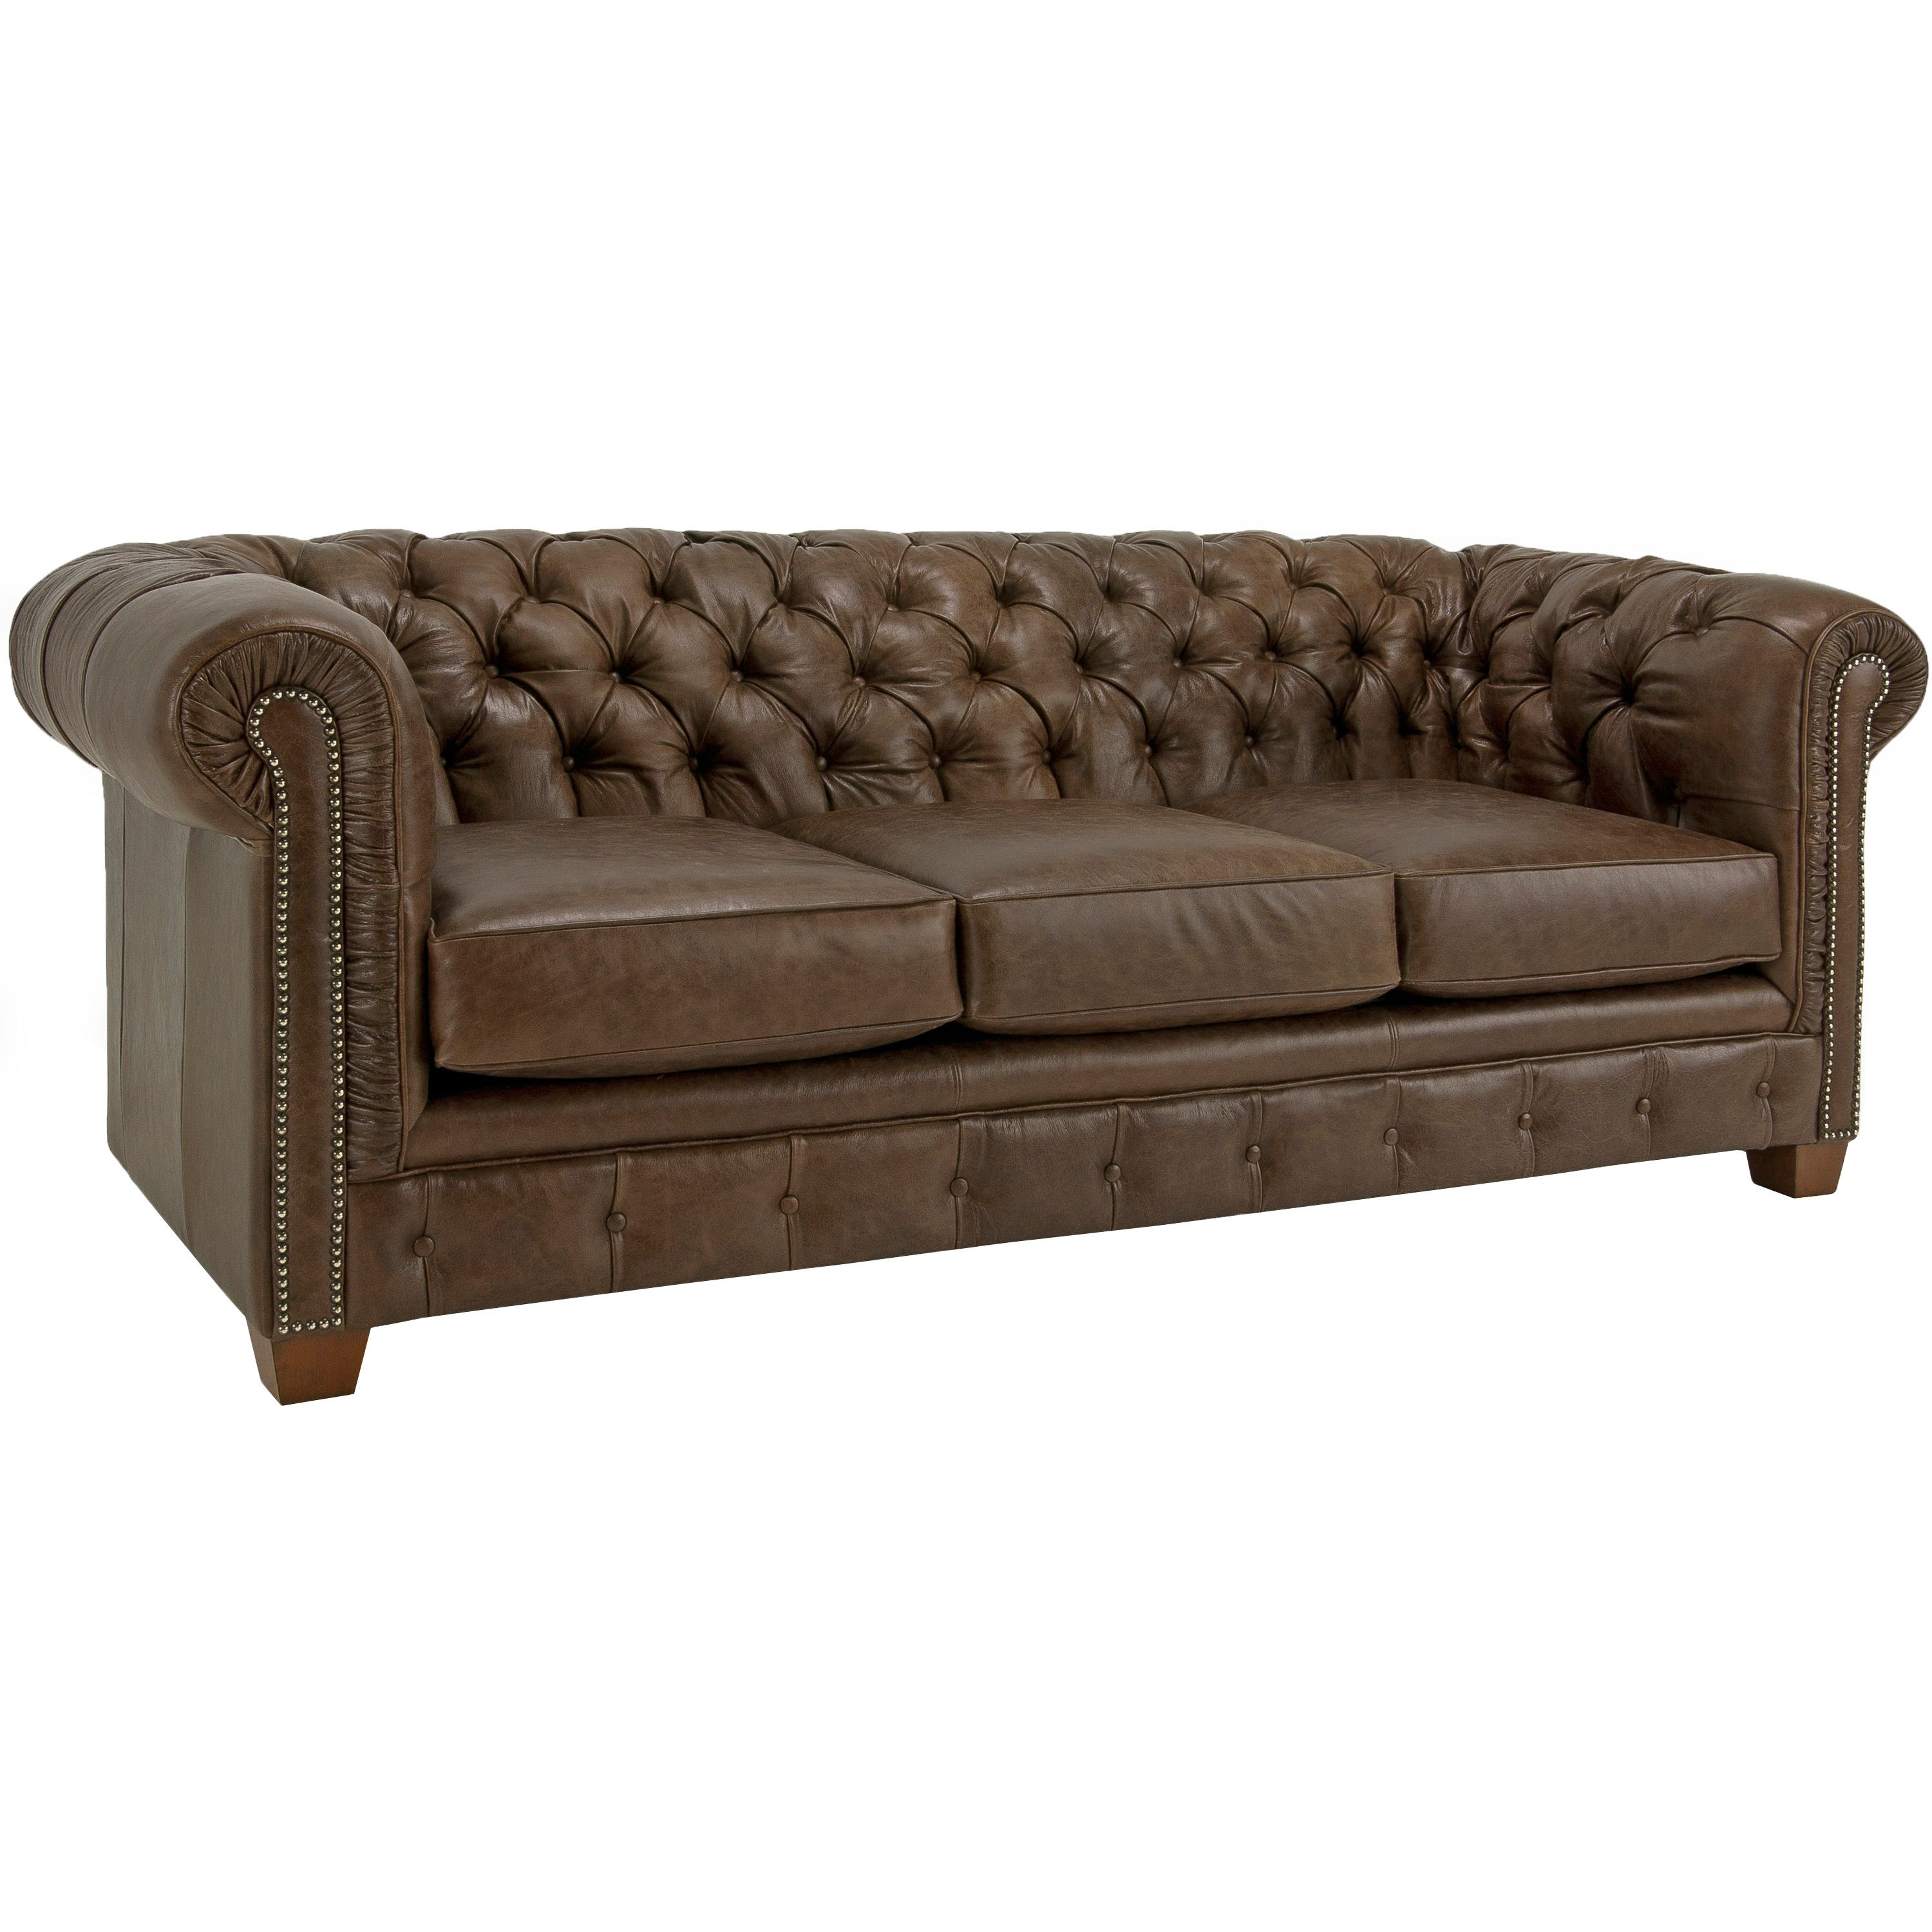 Tufted Back Leather Sofa Canadian Made 5360 Tufted Back